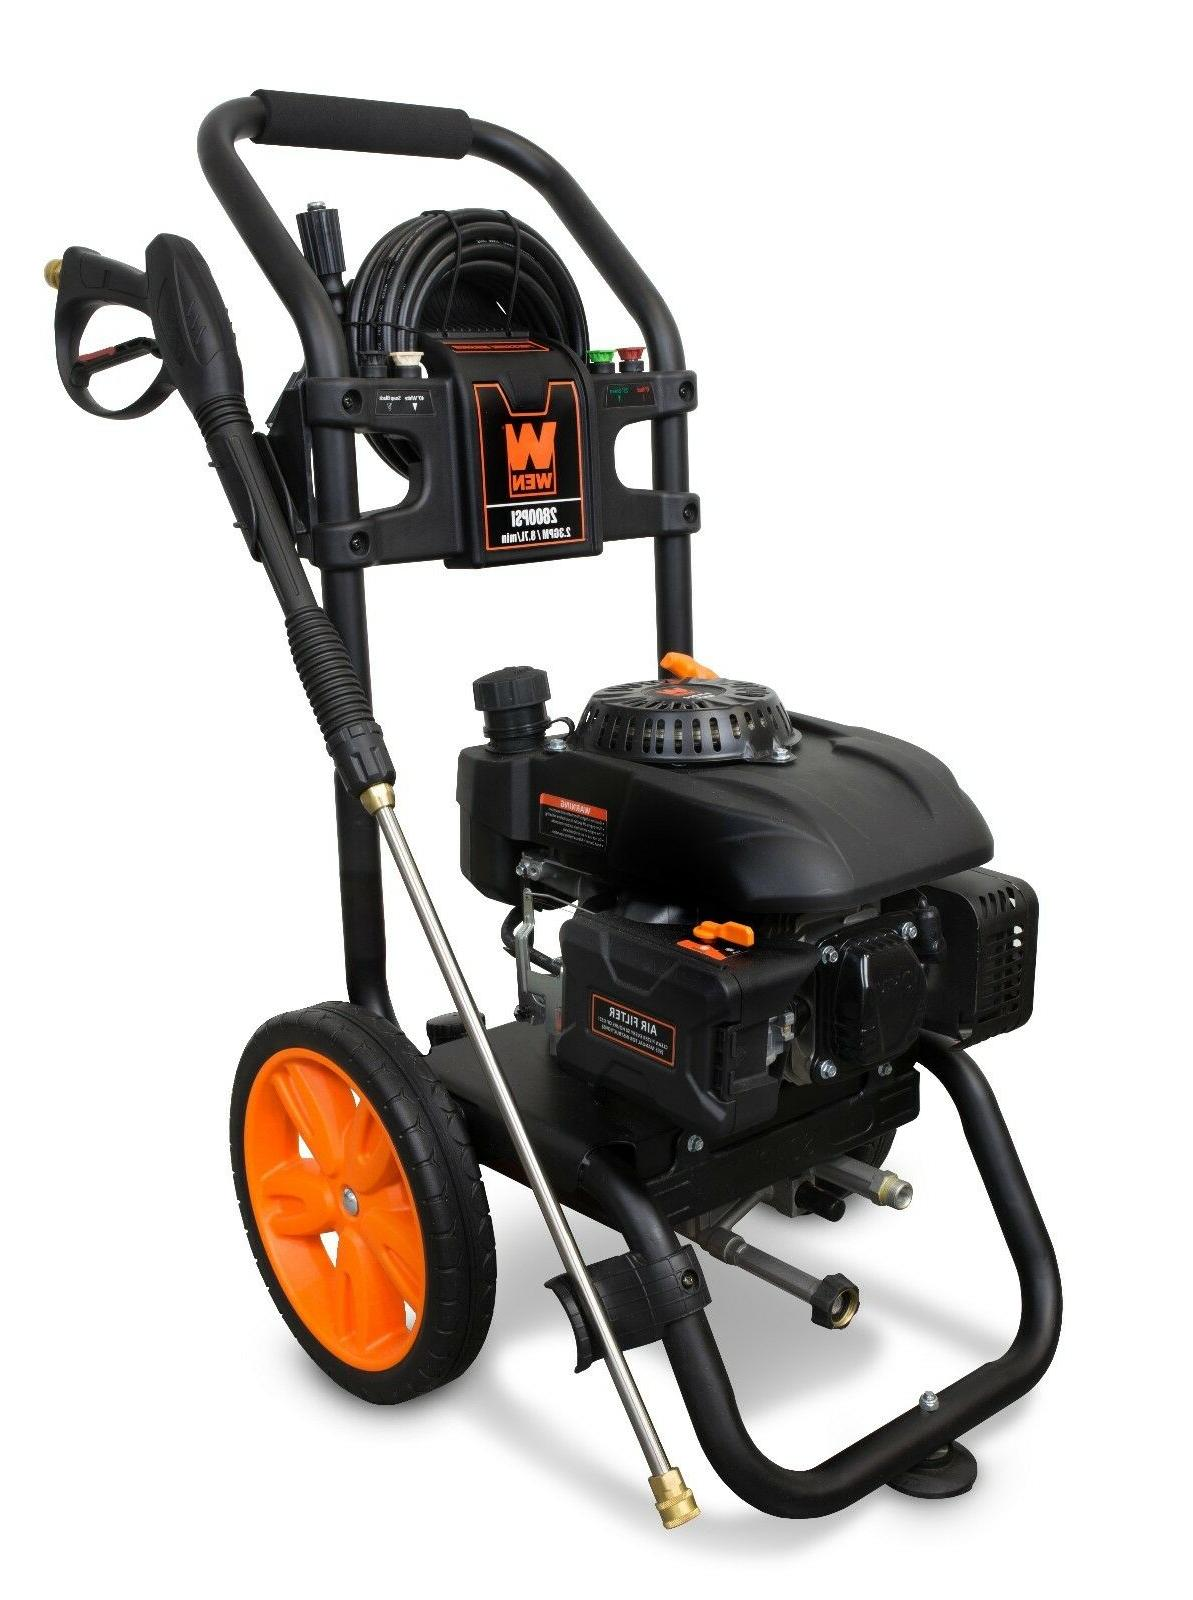 WEN PW28 2800 PSI Gas Pressure Washer, CARB Compliant